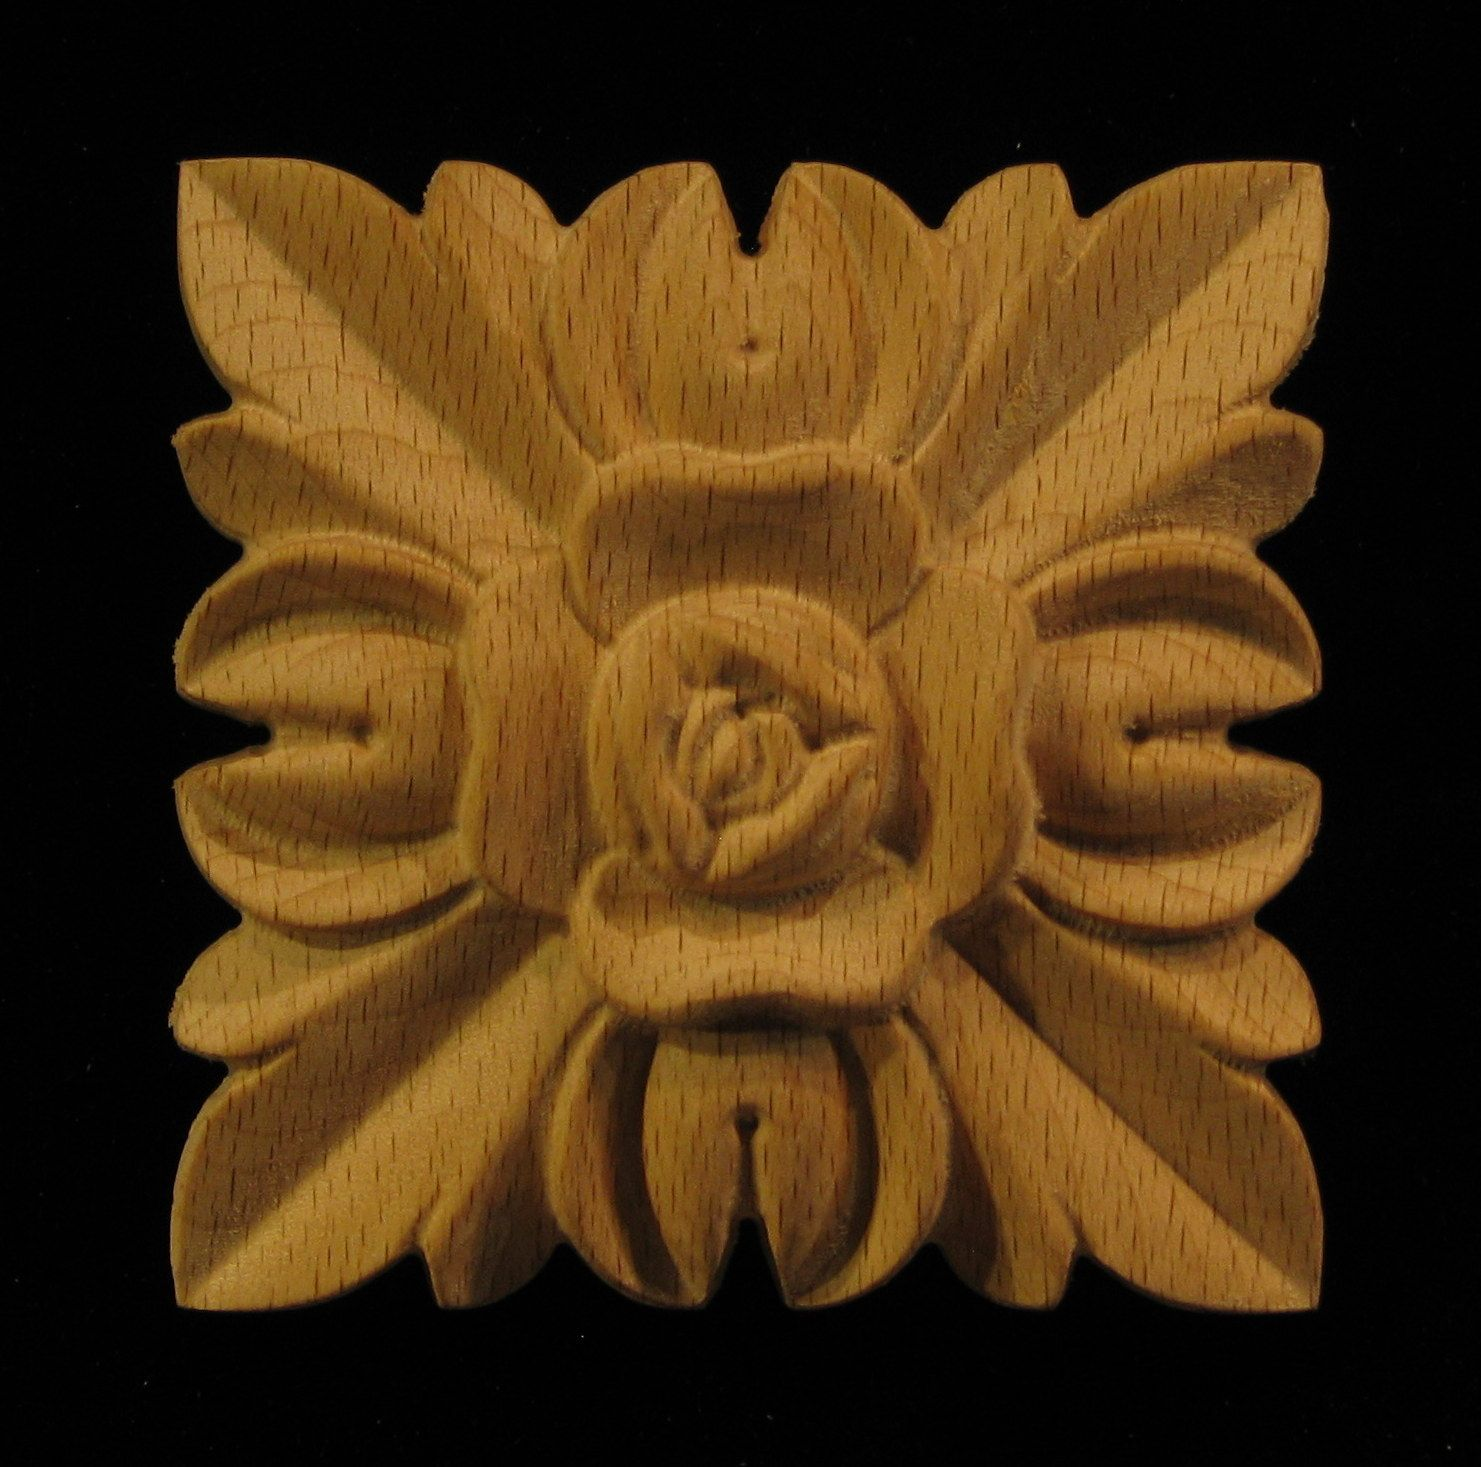 Wood Carved Rosette Rose Square Carving Designs Wood Rosettes Wood Carving Designs